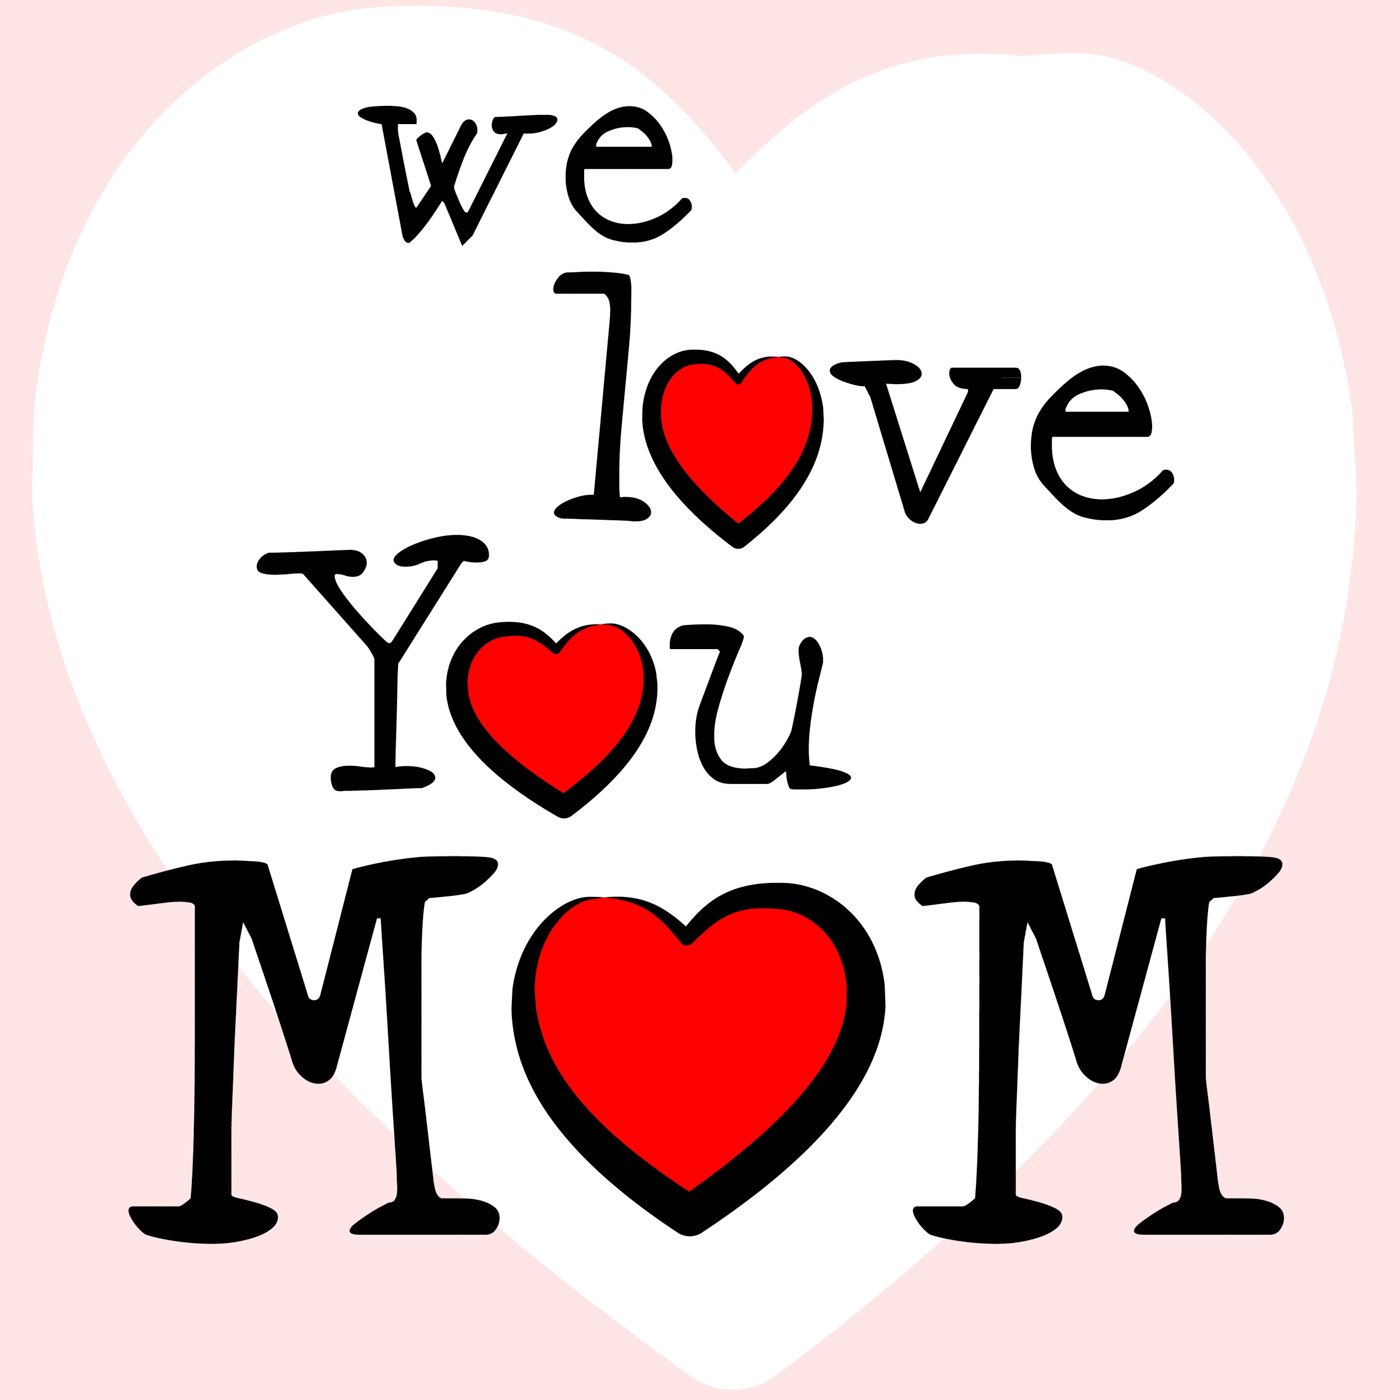 We love mom means mamma mummy and mothers photo